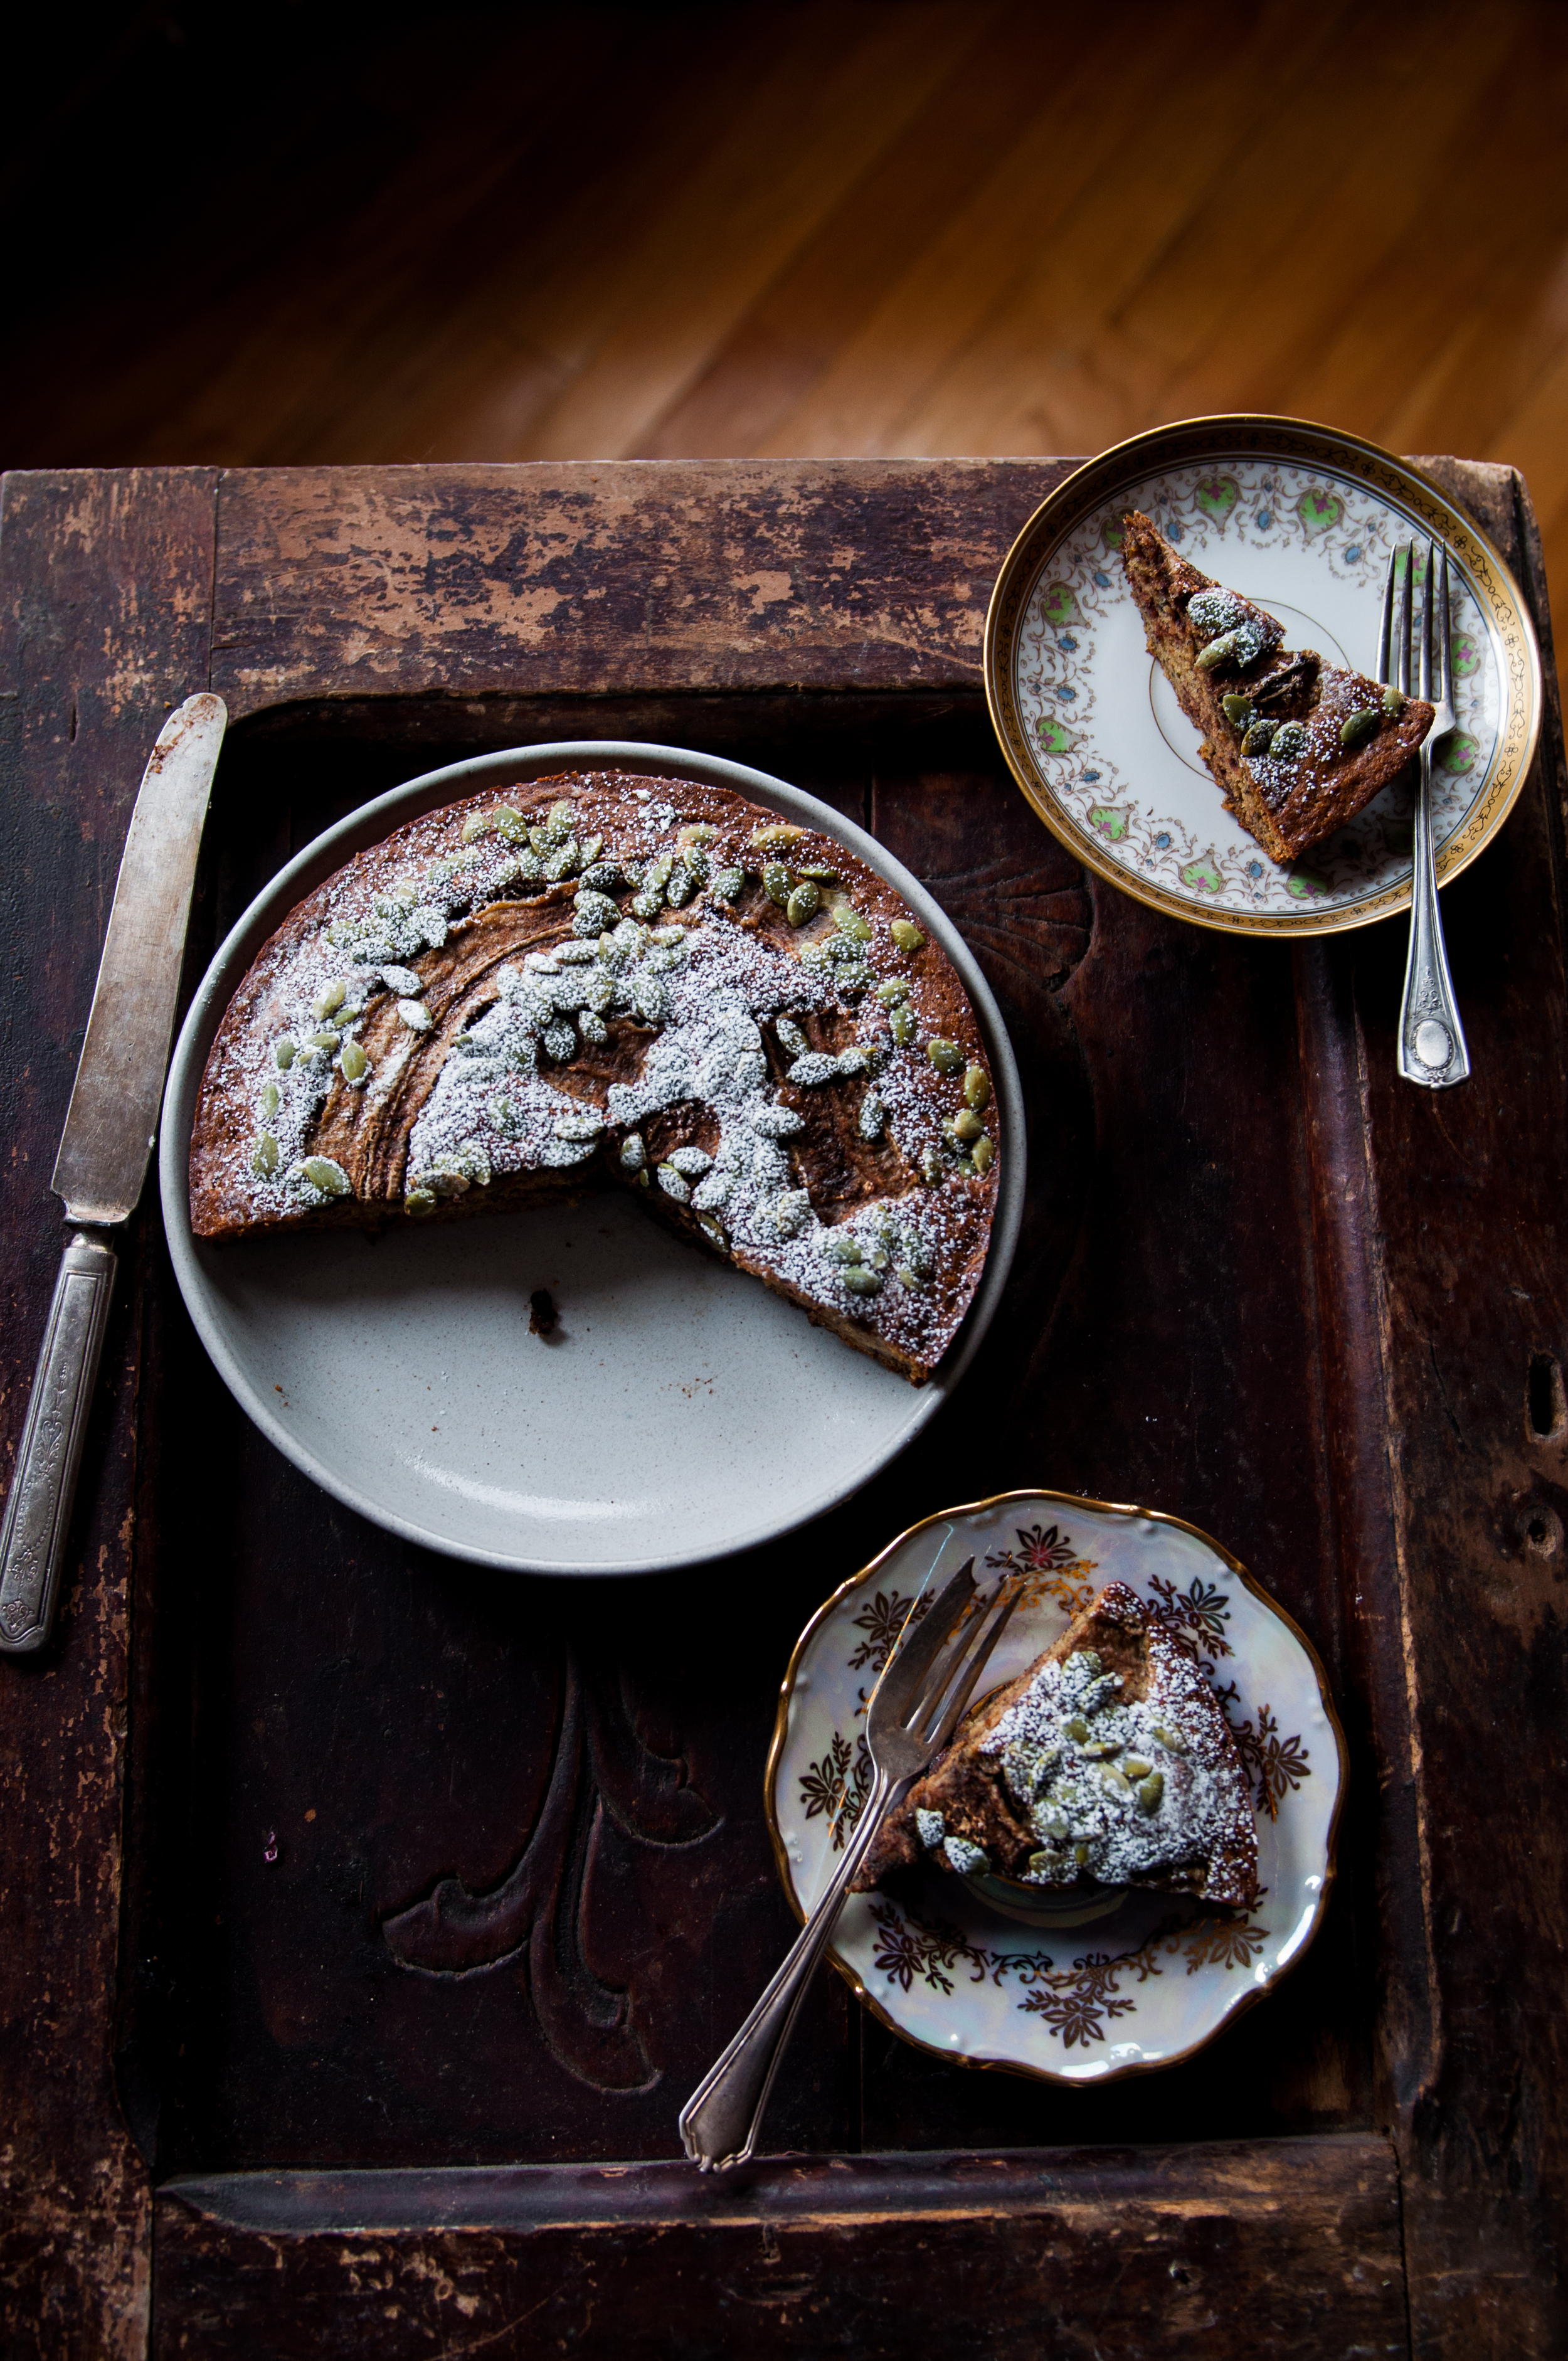 A banana cake made with the ancient wheat variety, Einkorn and generous dollops of nutella swirled into it for luxuriousseduction ofthe palate.